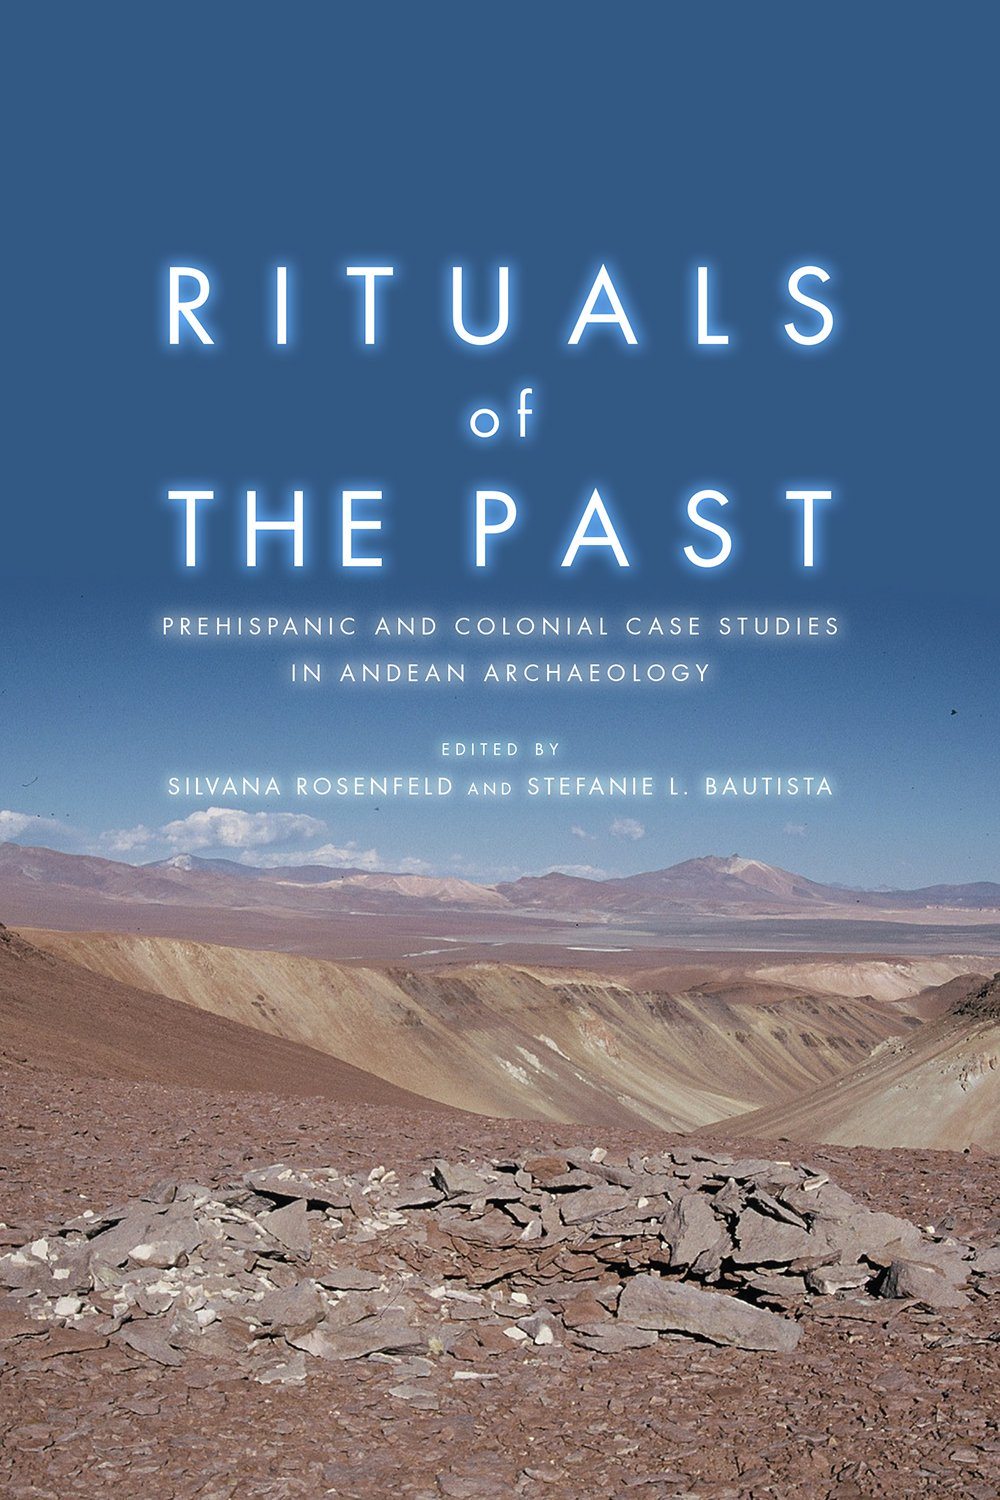 Rituals of the Past: Prehispanic and Colonial Case Studies in Andean Archaeology: Silvana Rosenfeld, Stefanie Bautista: 9781607325956: Amazon.com: Books